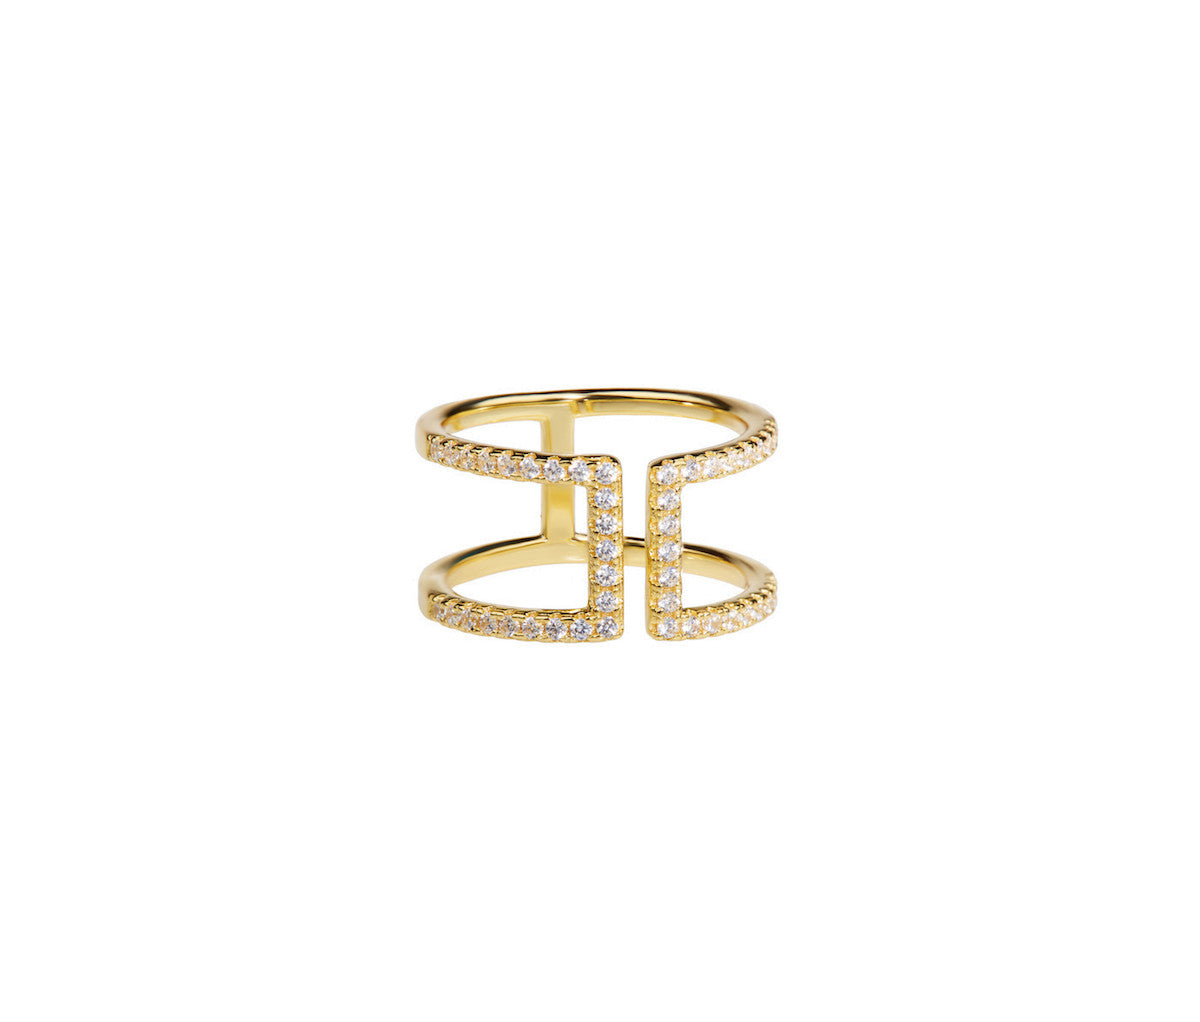 Silver in 1 micron Yellow Gold Double Bar Ring